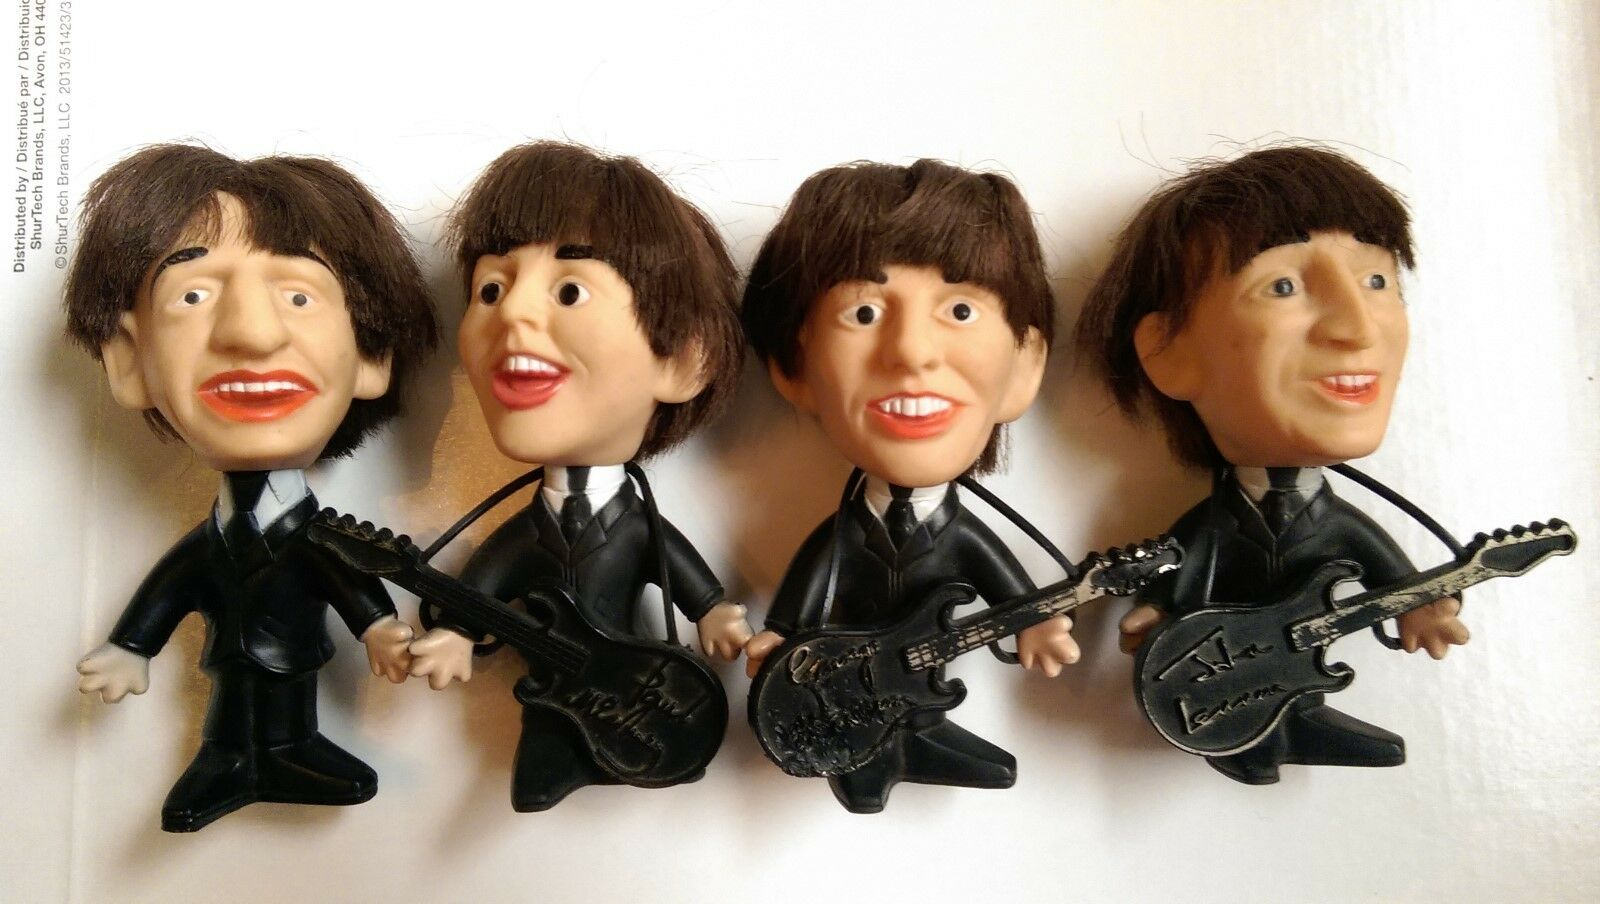 The Beatles Remco Dolls set of 4